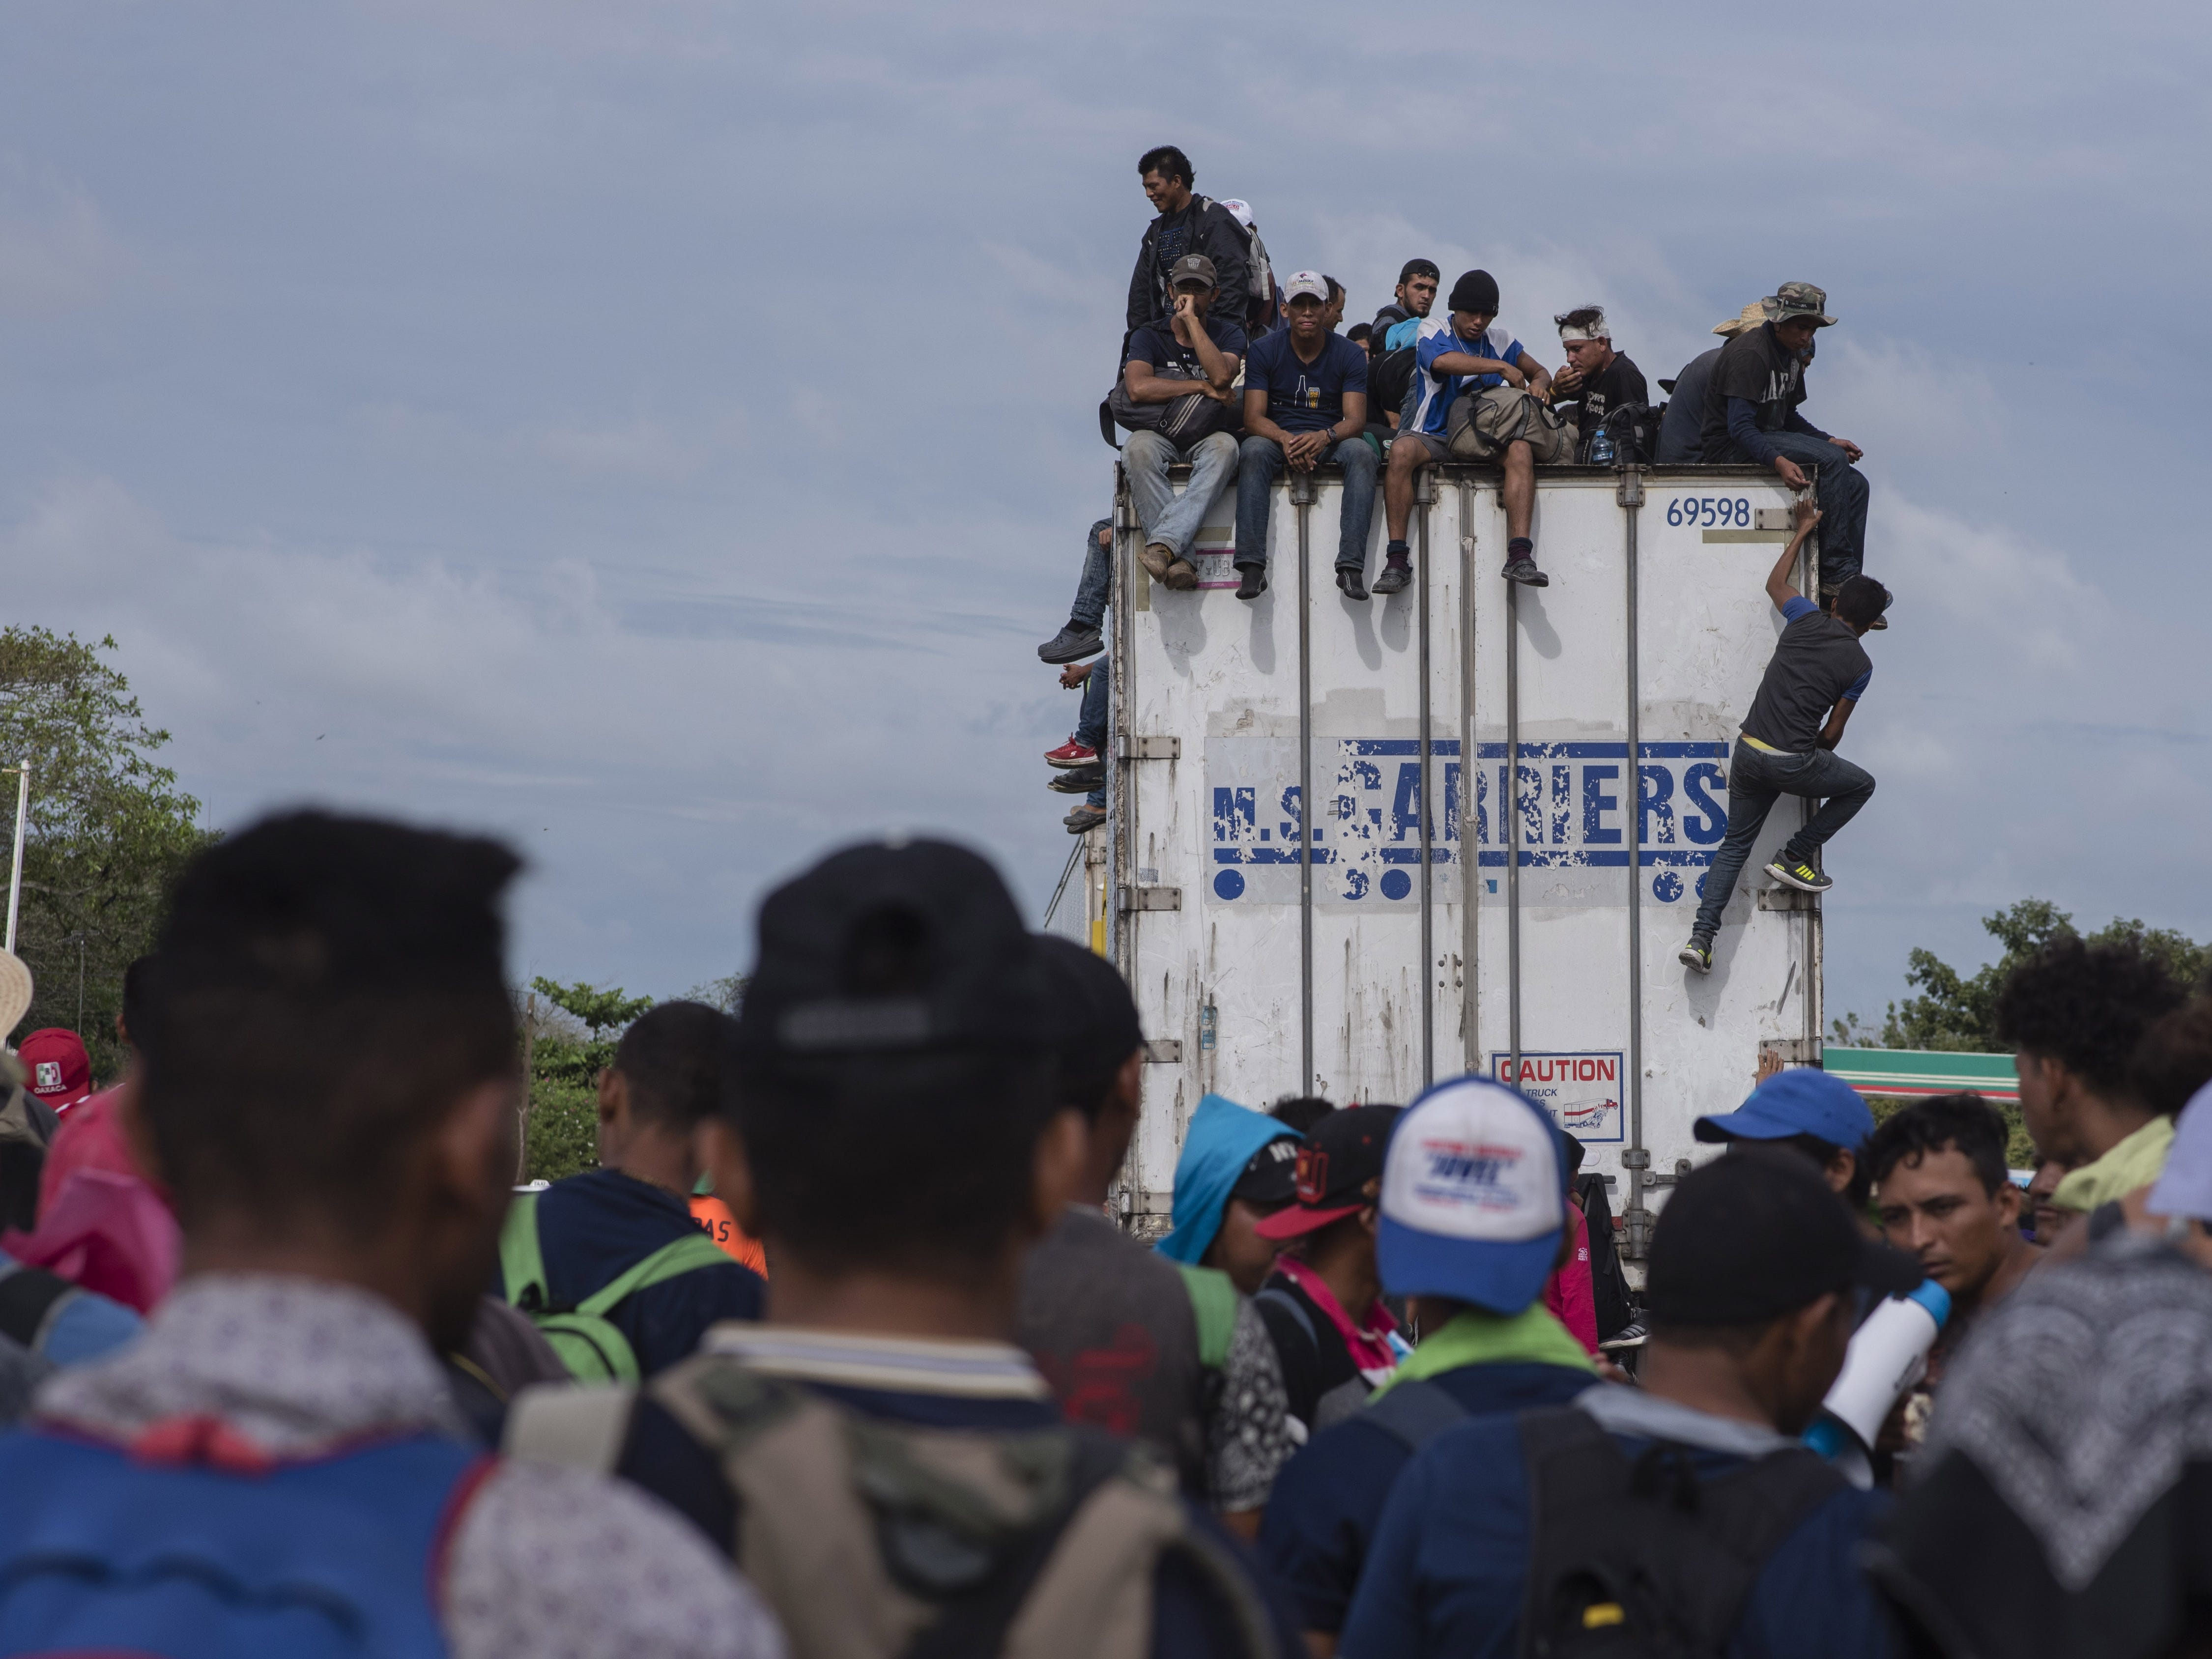 Members of the migrant caravan continue their journey to the United States through Ciudad Isla, state of Veracruz, Mexico, on Nov. 3, 2018.